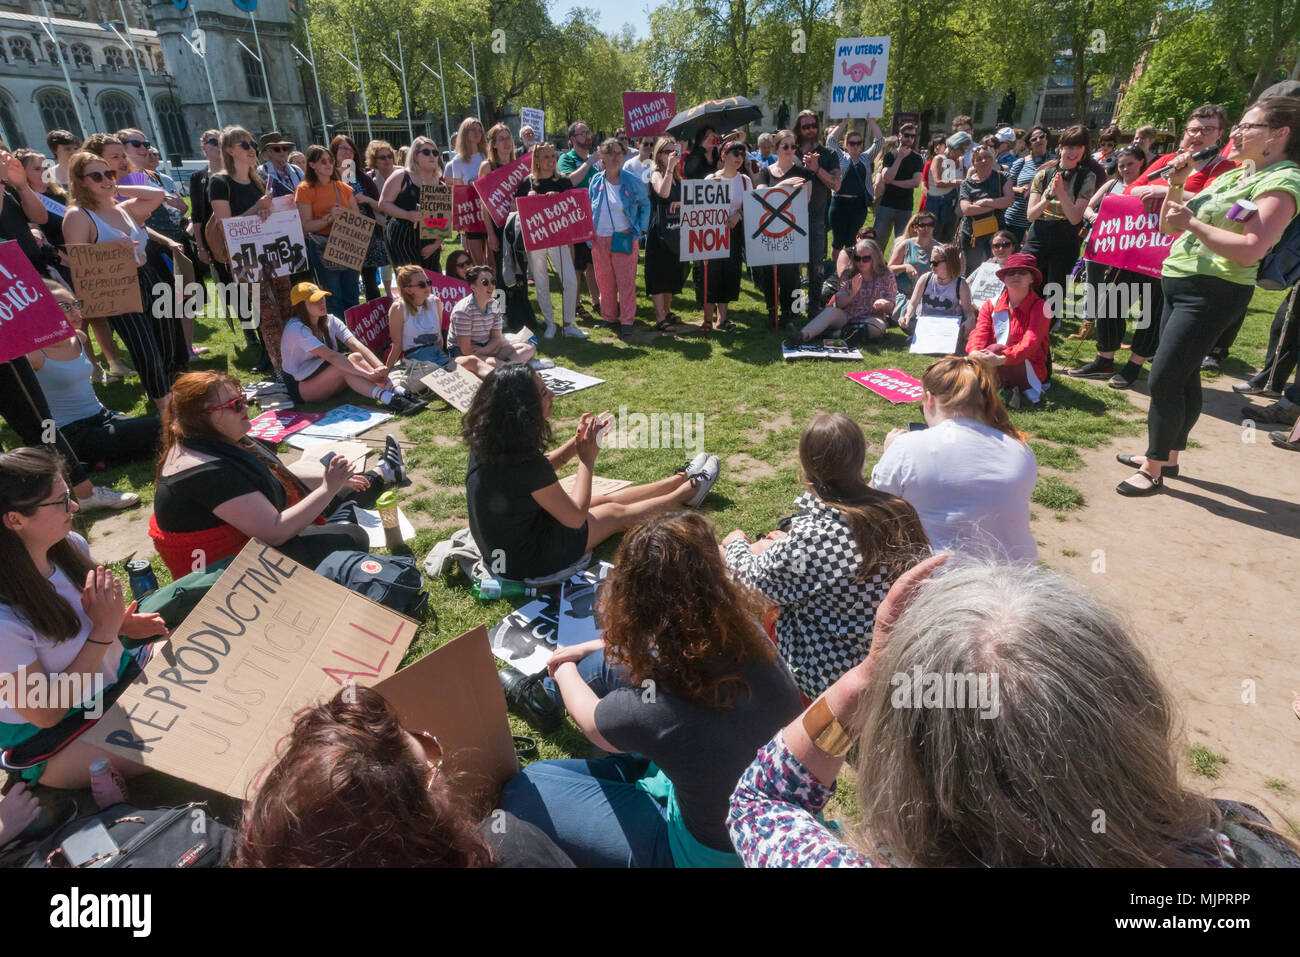 London, UK. 5th May 2018. Women in the abortion rights campaign hold a rally in Parliament Square before the annual March for Life UK by pro-life anti-abortion campaigners was to march to a rally there. They insisted on the right for women to choose and opposed to any increase of restrictions which would lead to the problems we saw before the 1967 Abortion Act, when women risked their lives in back street abortions. They called for women in Northern Ireland to be given the same rights as in the rest of the UK and for an end of the harassment of women going into clinics, and supported the Irish - Stock Image